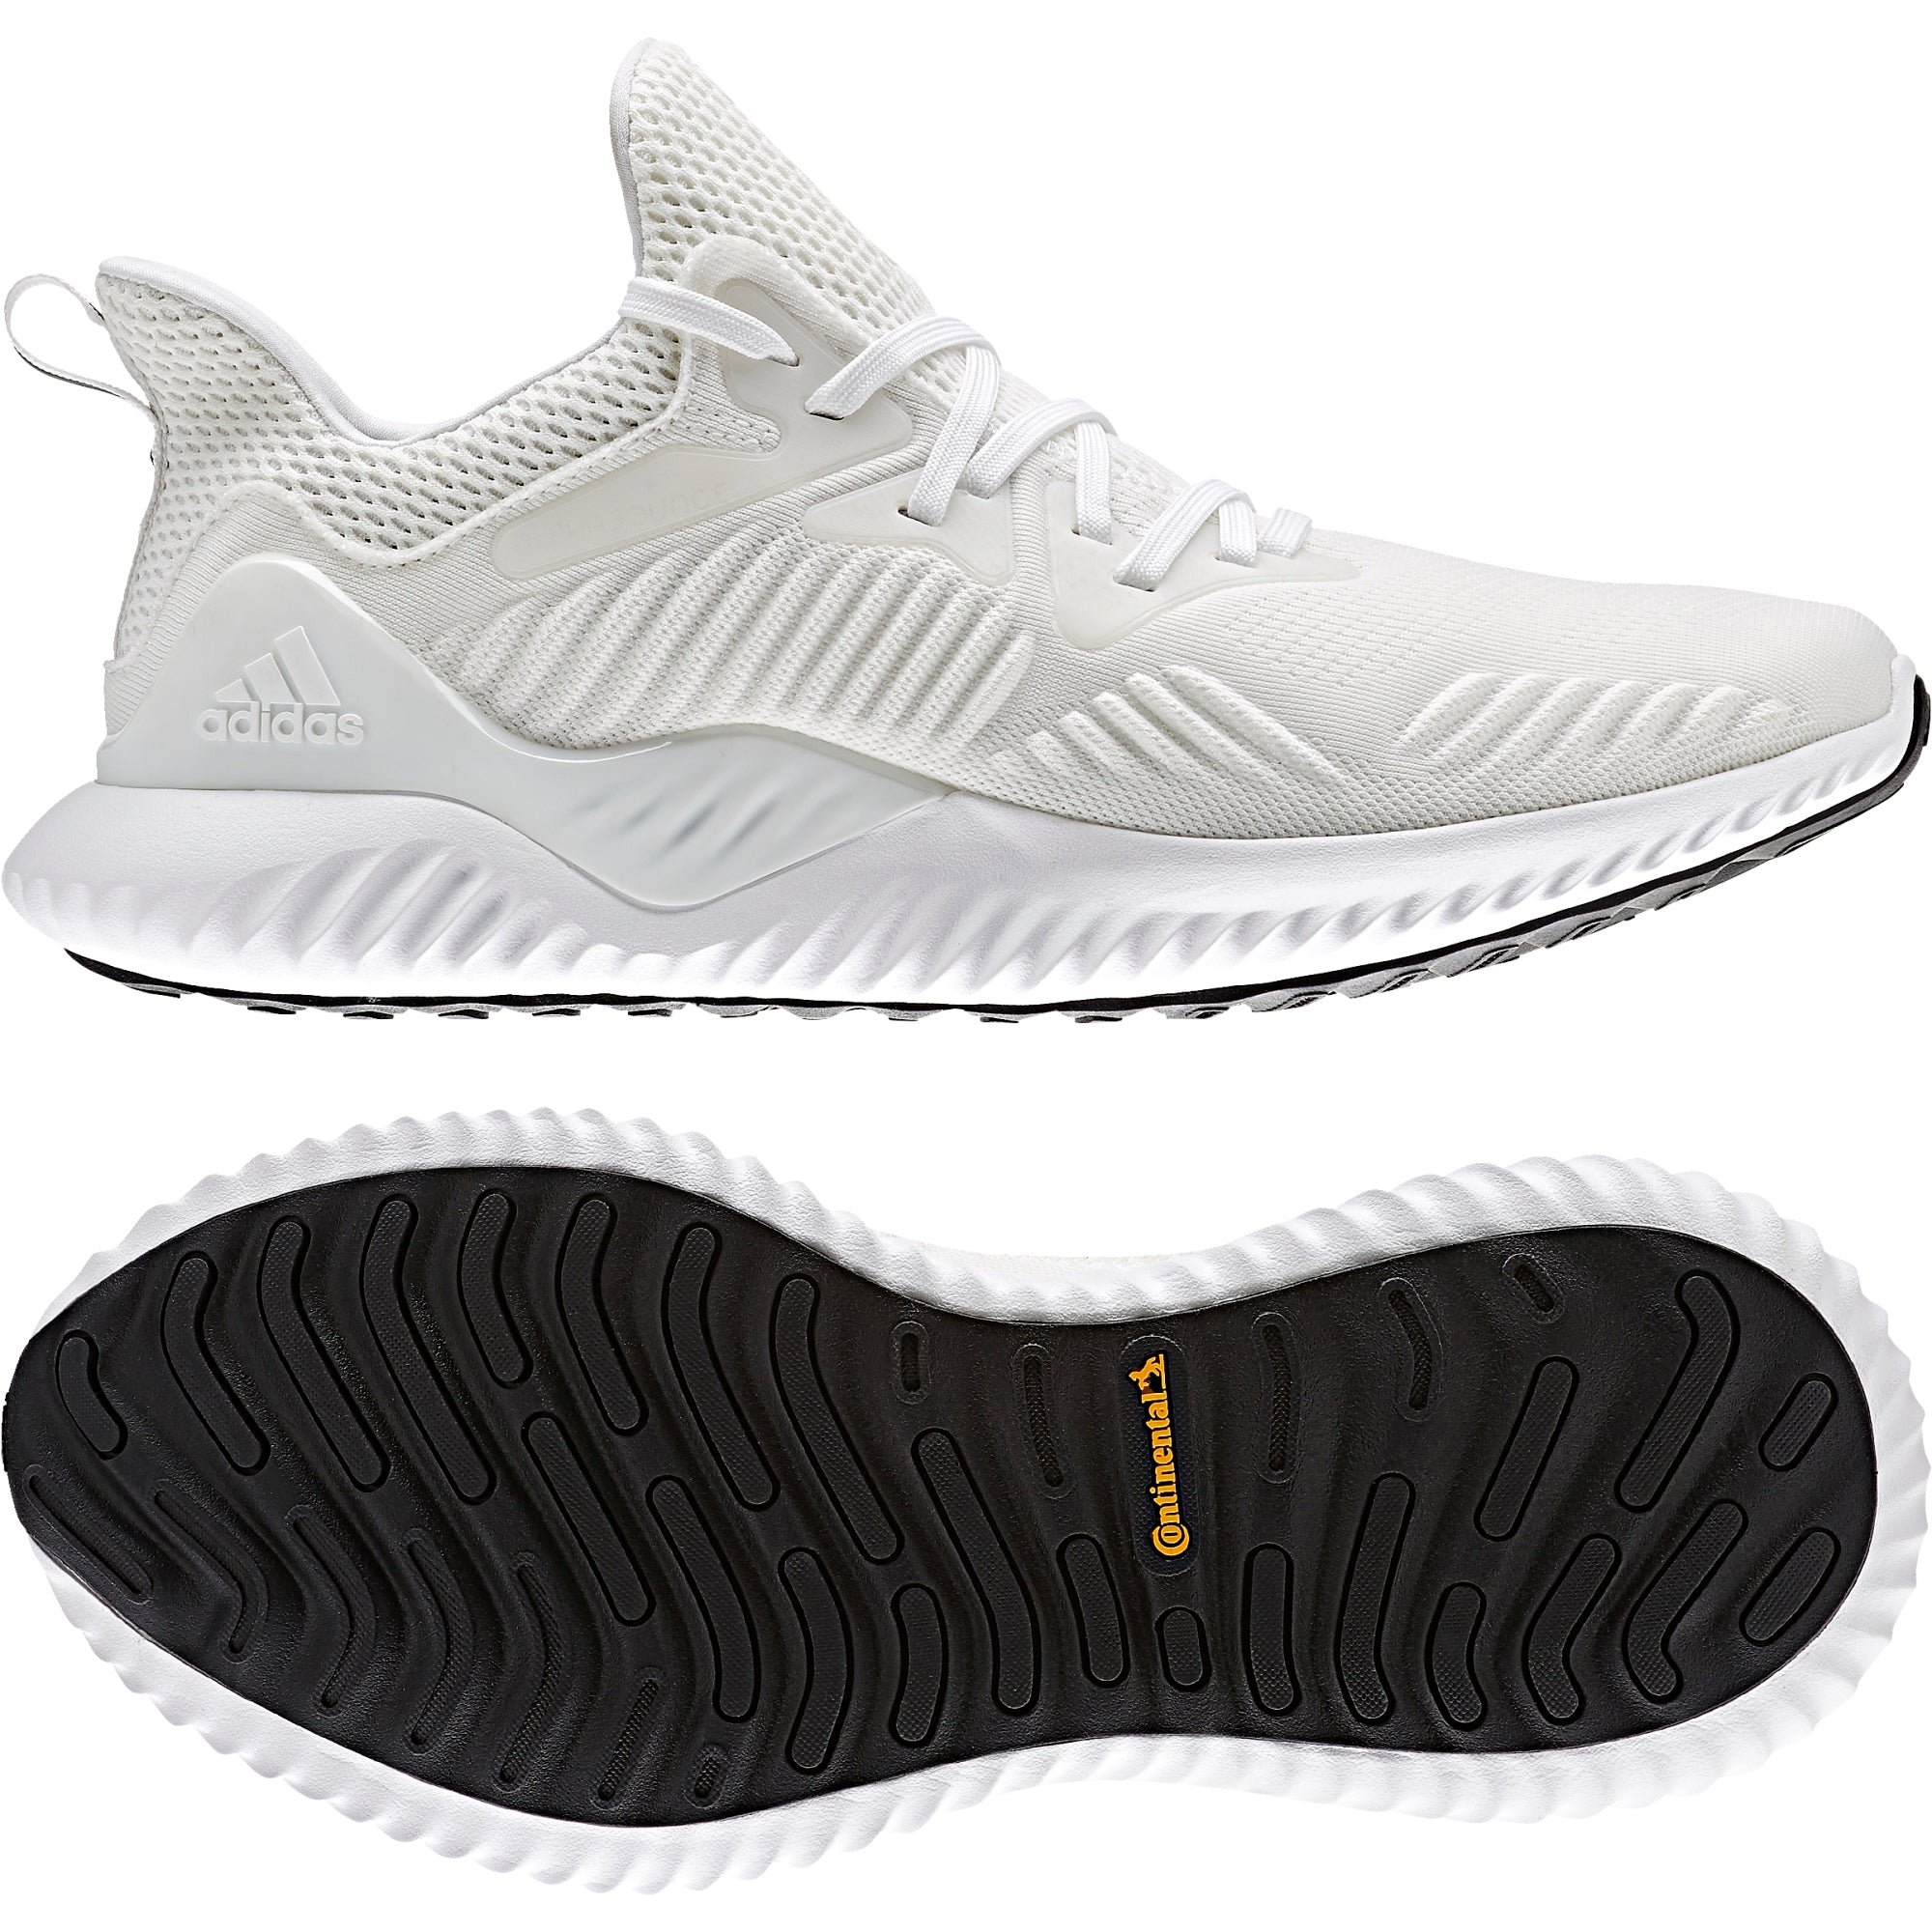 58554f27aade55 Singapore adidas Neutral Running Shoes Men Alphabounce Beyond Running Shoes